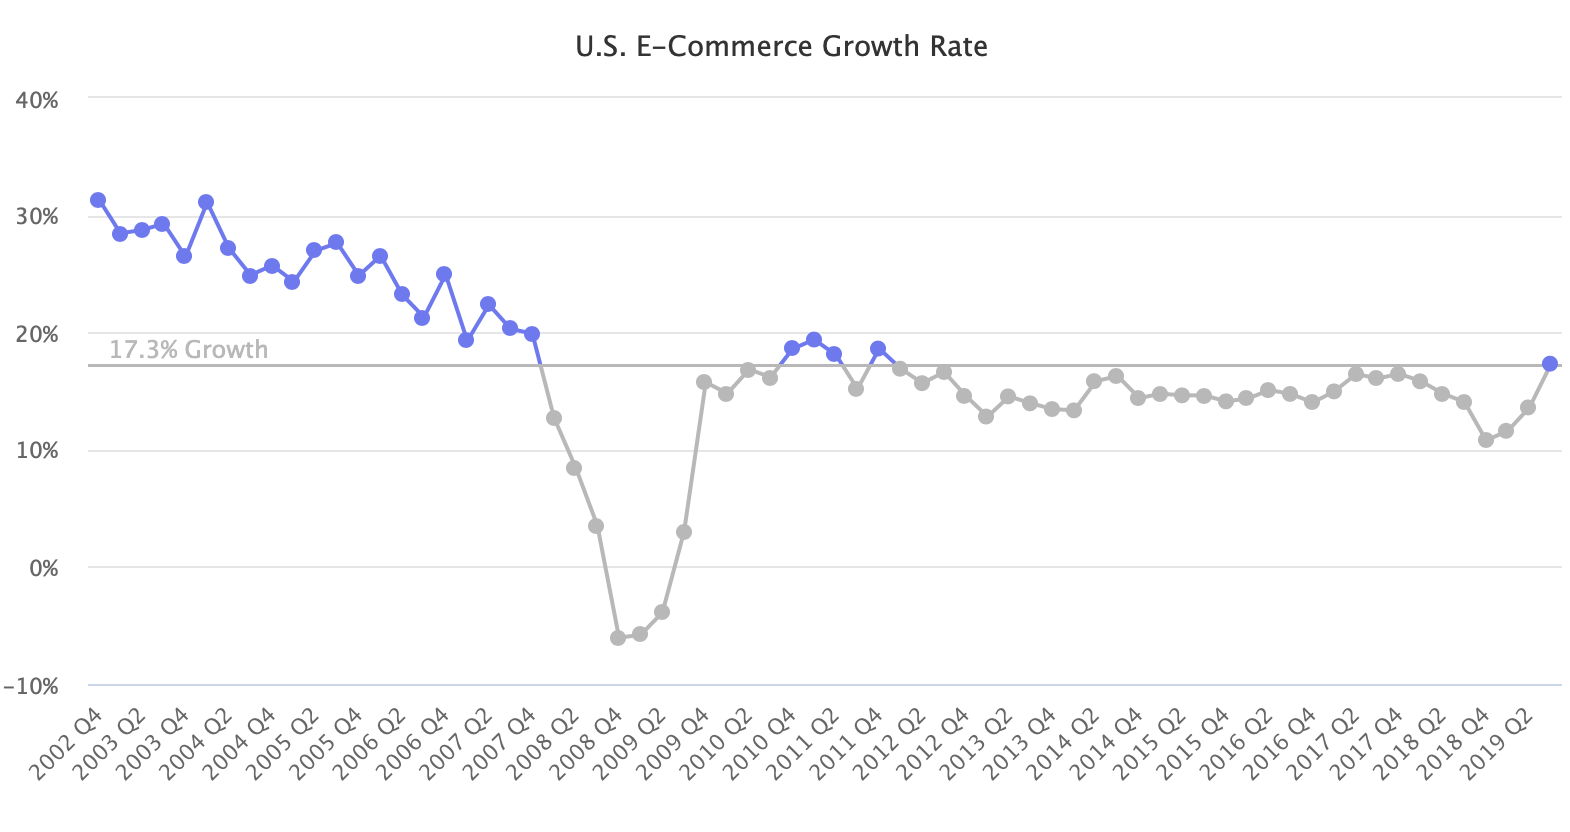 US e-commerce growth rate